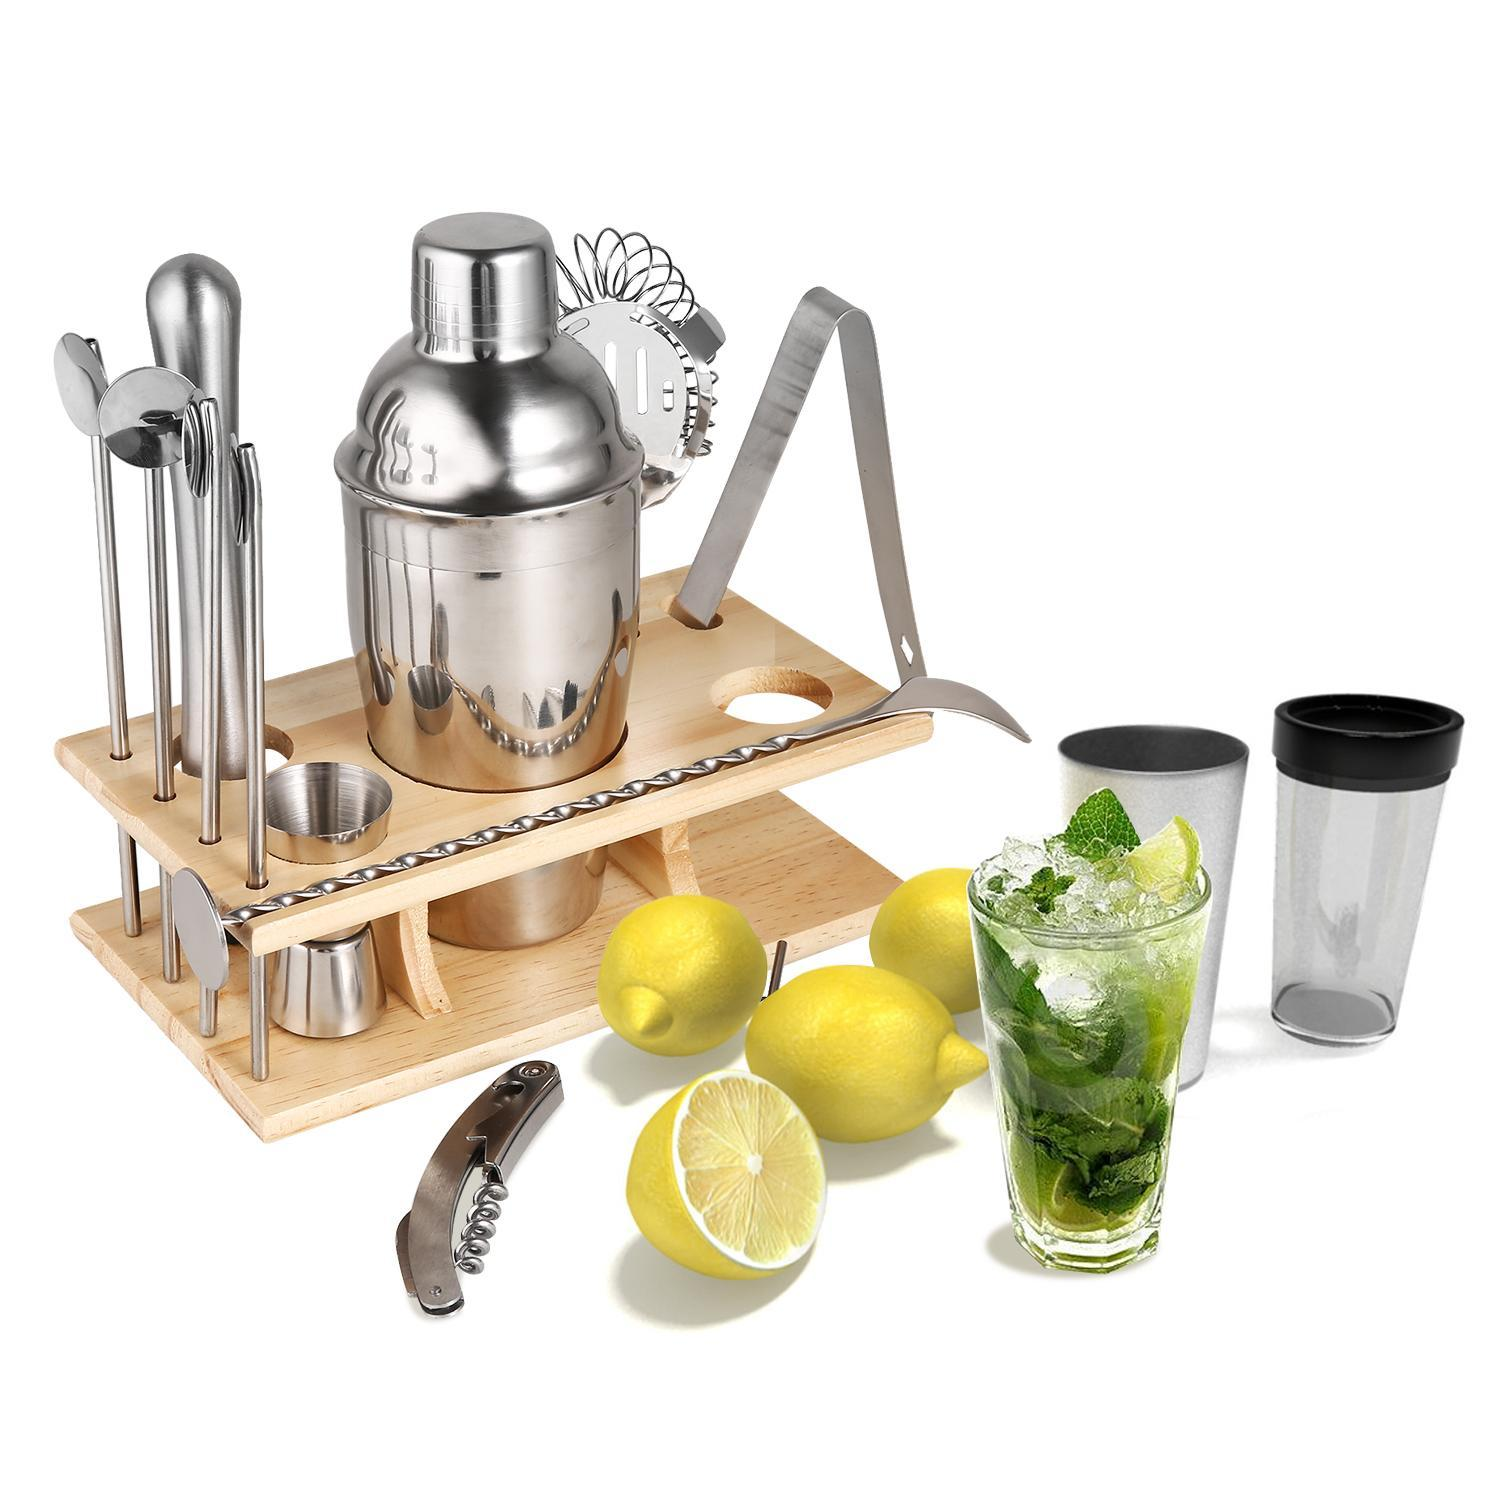 14 Piece Stainless Steel Cocktail Bar Set Shaker With Beech Stand 4 Straw Spoons Muddler Double Sided Jigger... by